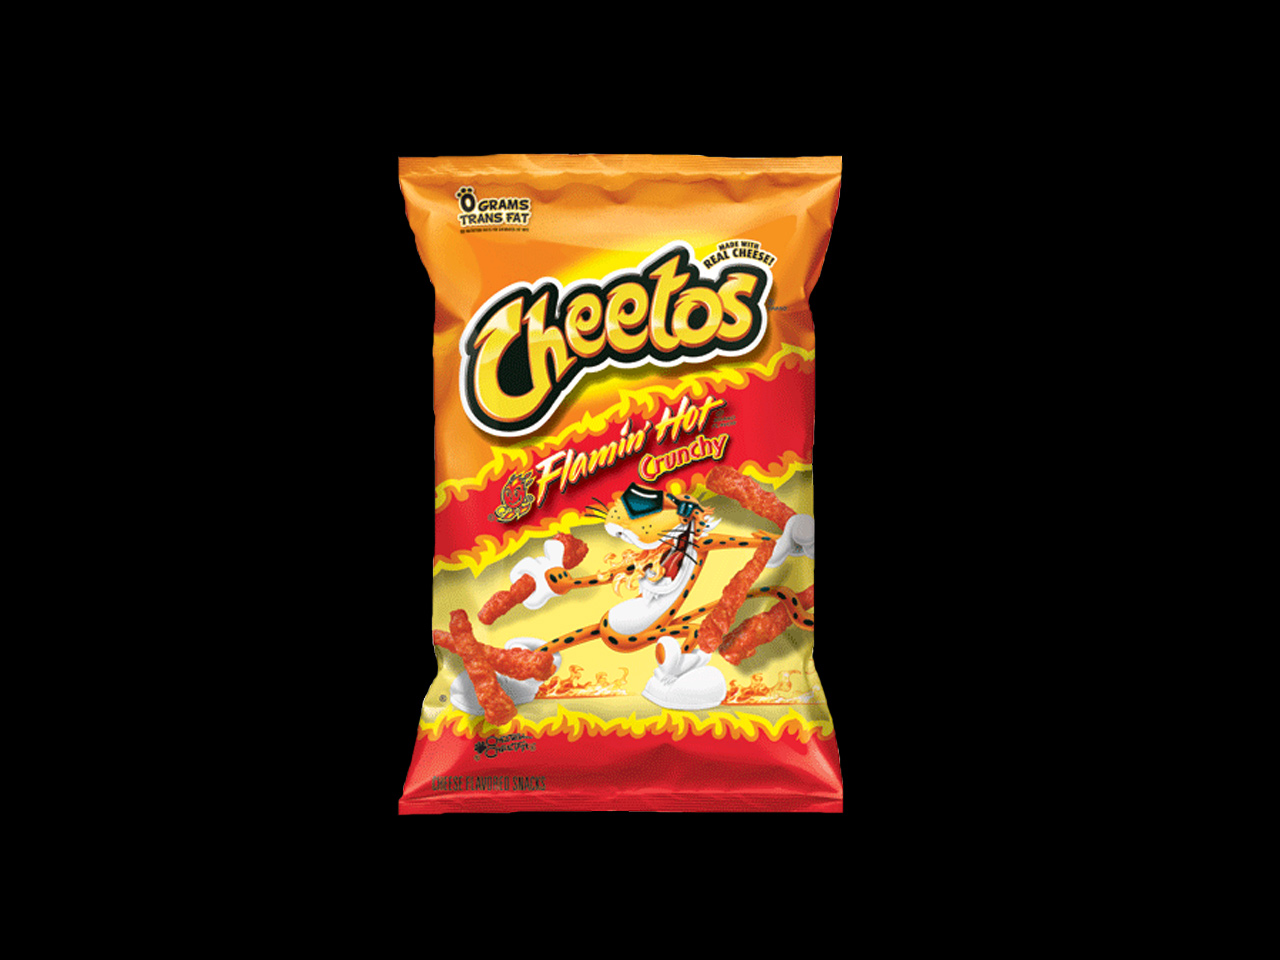 Mom Blames Hot Cheetos Other Spicy Snacks For Teens Health Issues